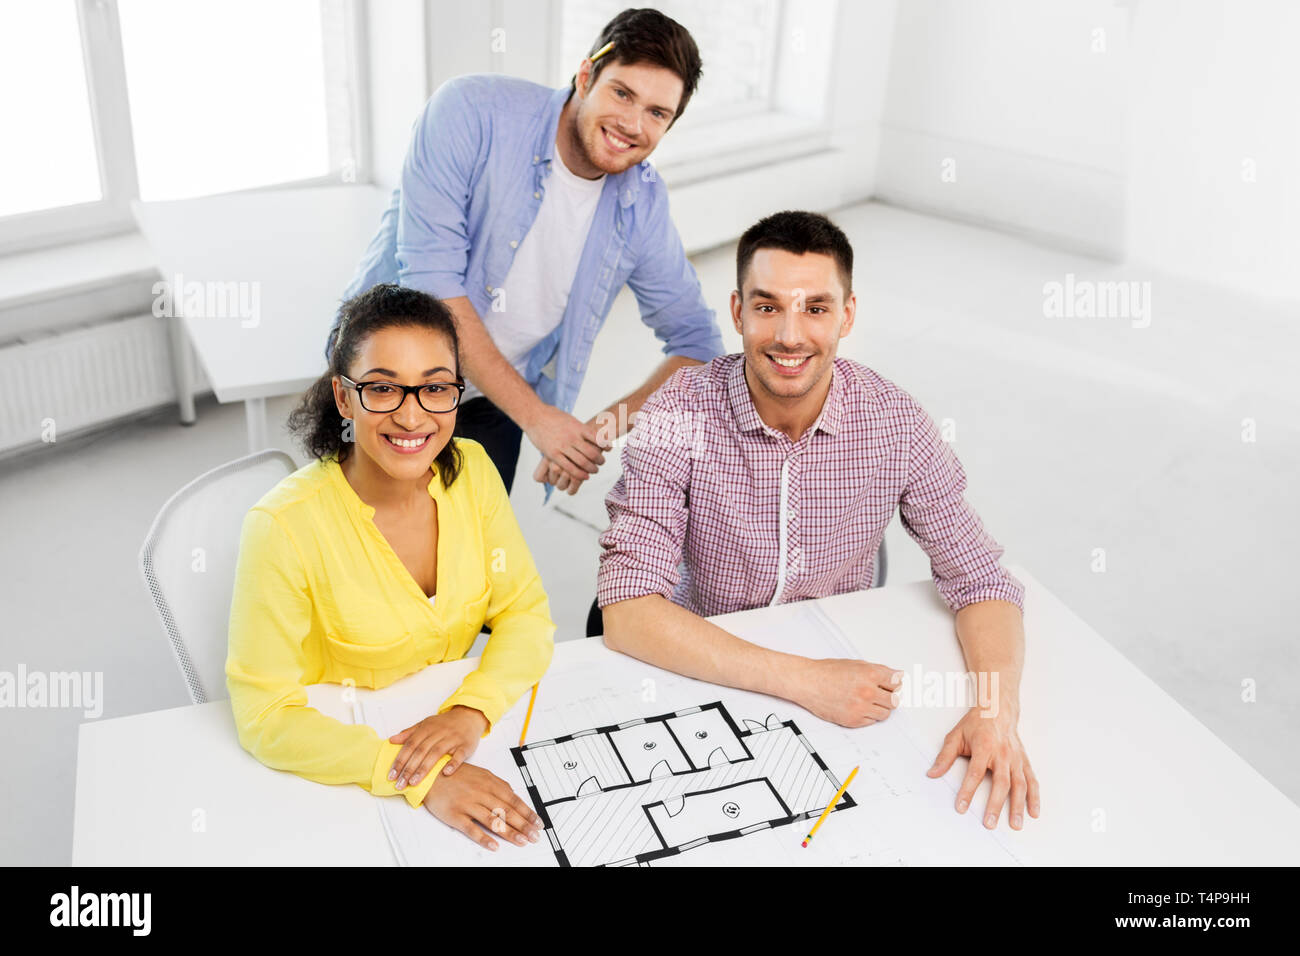 business, architecture and people concept - creative team of architects or interior designers with blueprint working at office Stock Photo